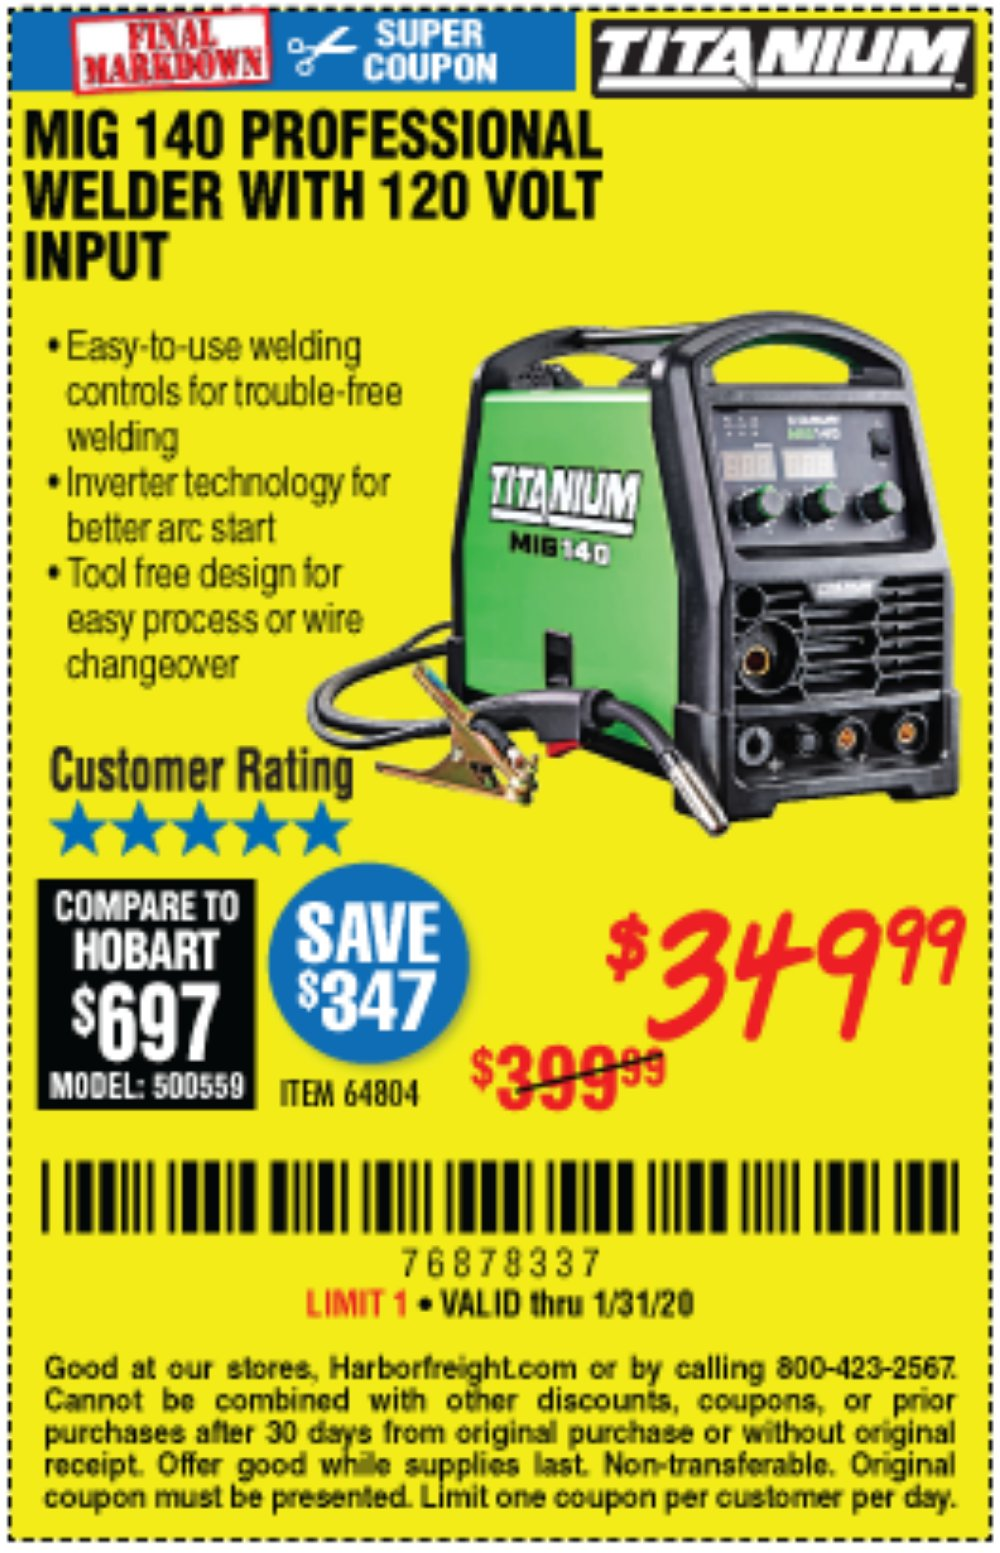 Harbor Freight Coupon, HF Coupons - Titanium Mig 140 Welder